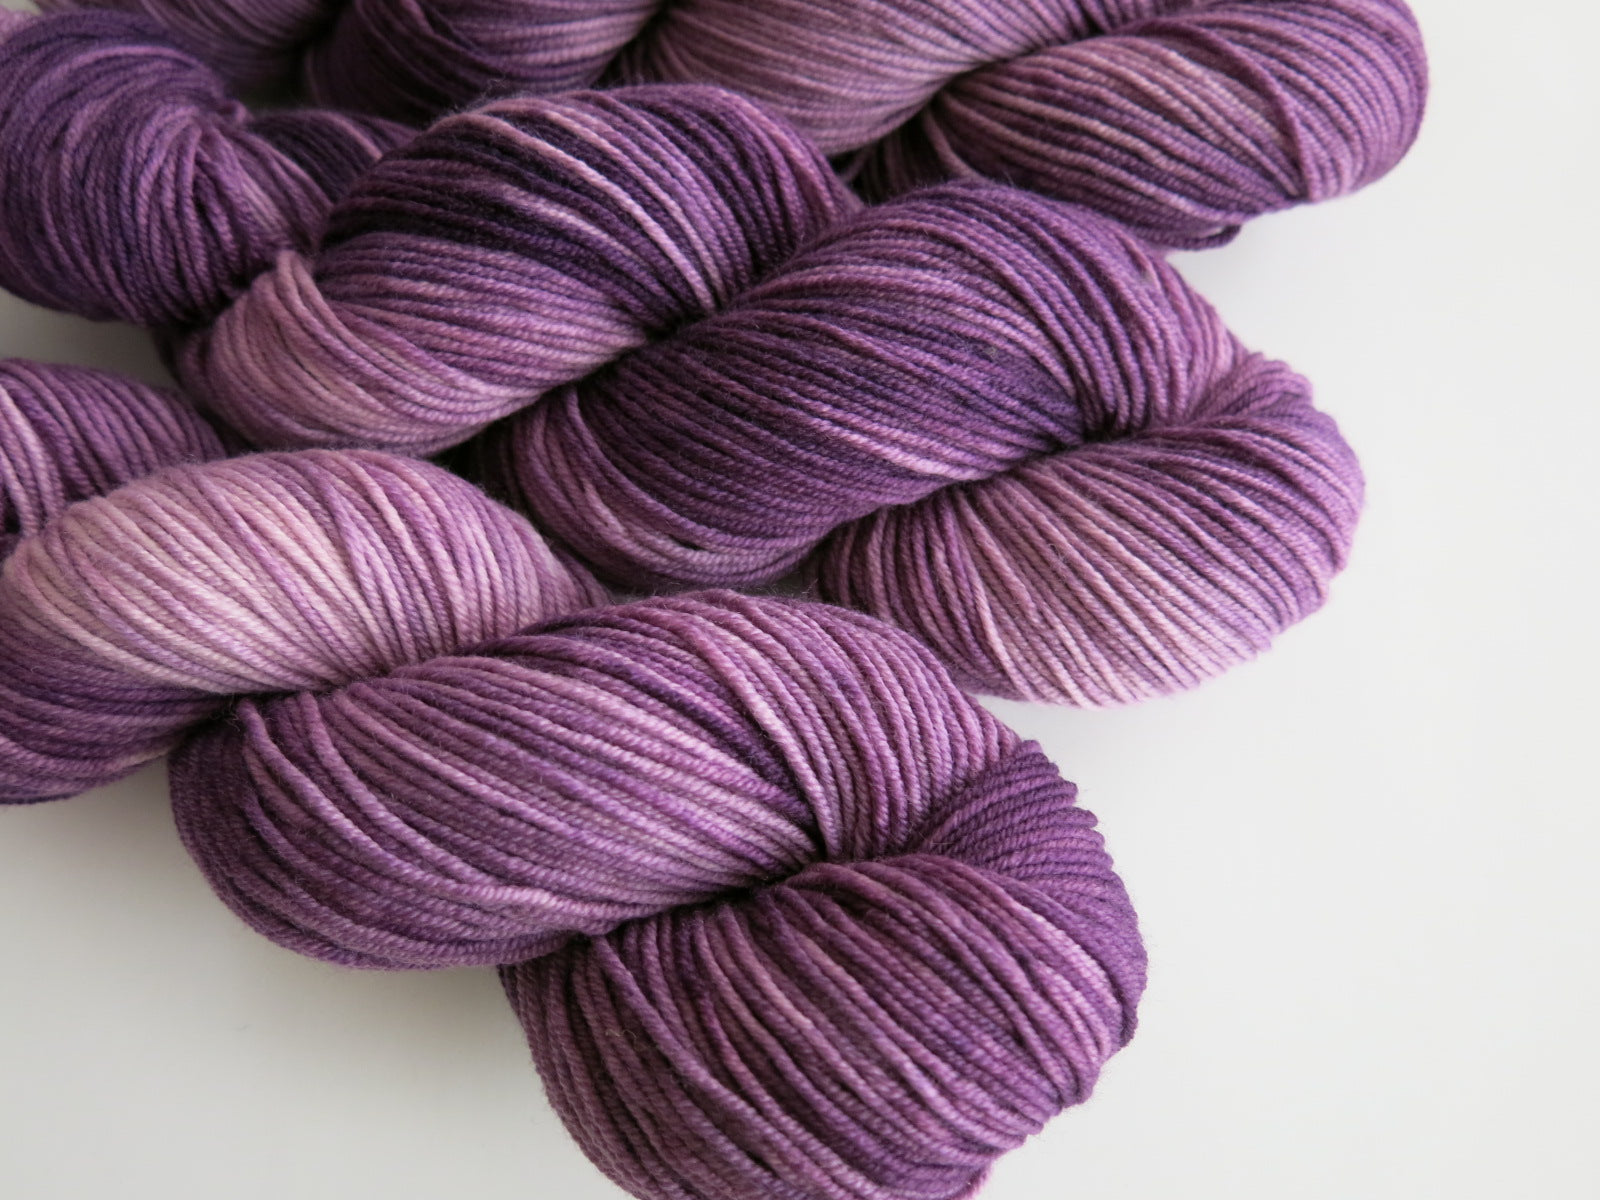 indie dyed purple yarn skeins for knitting ans weaving